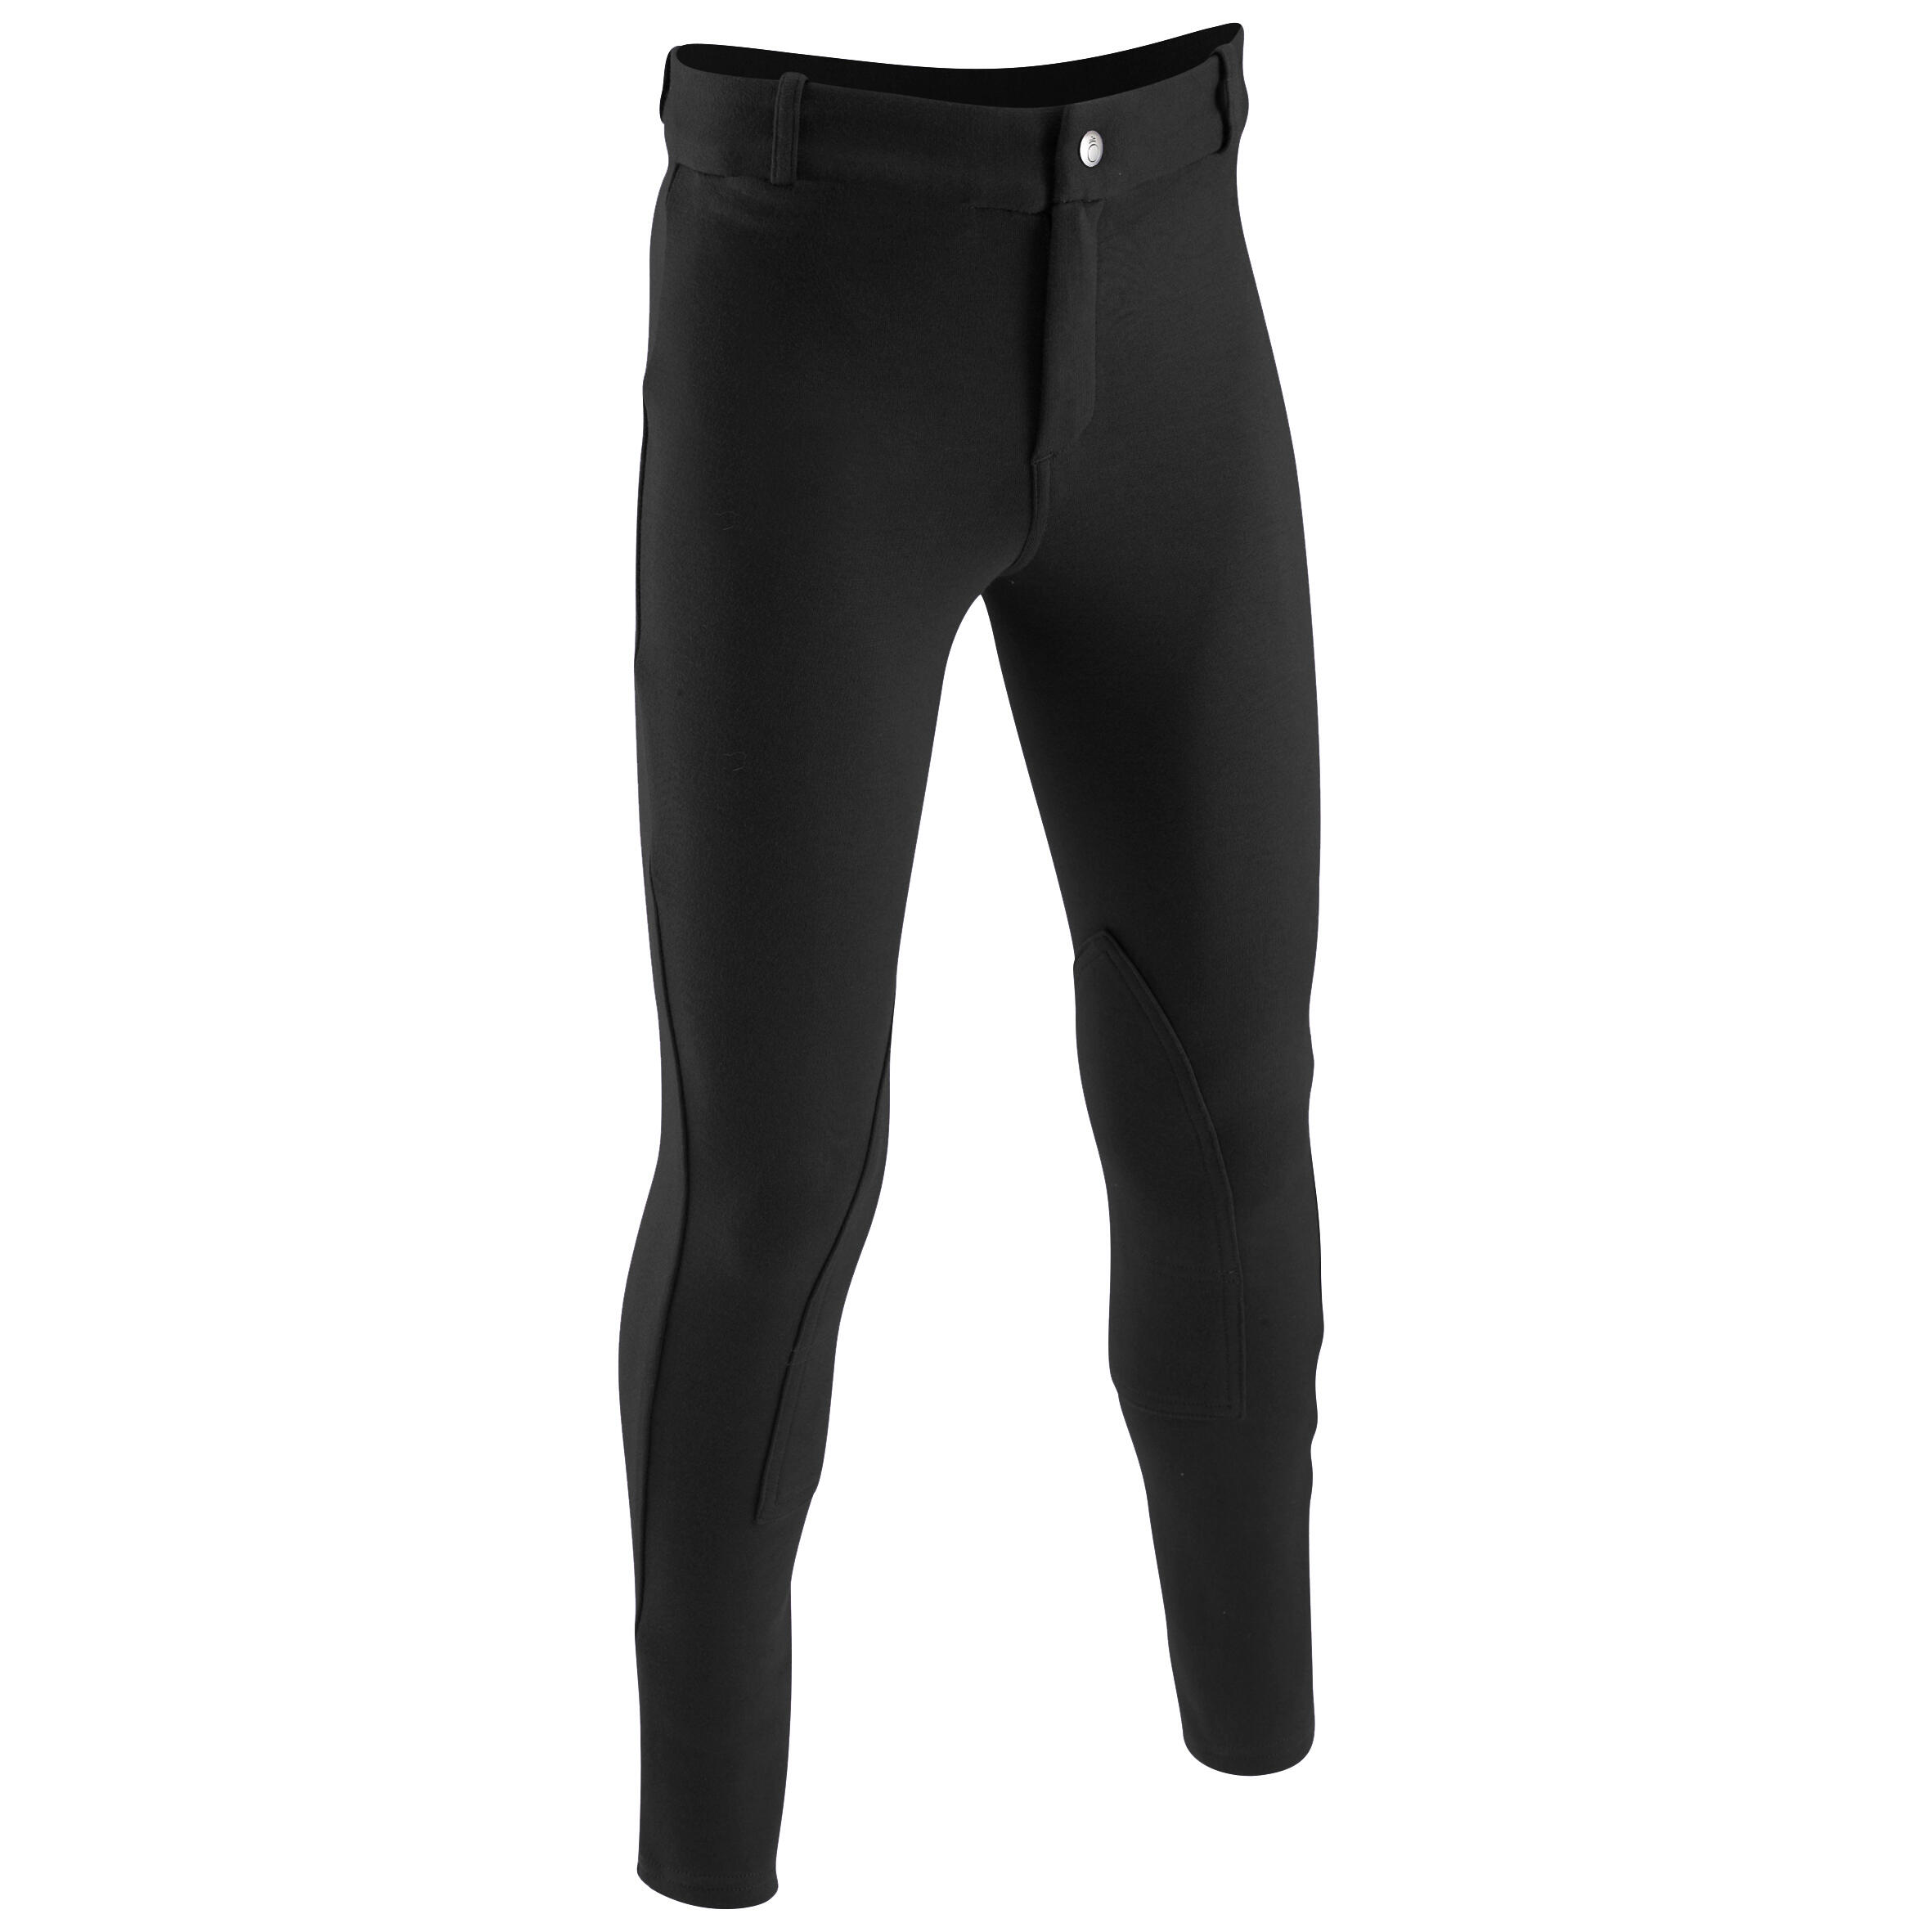 Discovery Children's Horse Riding Jodhpurs - Hitam